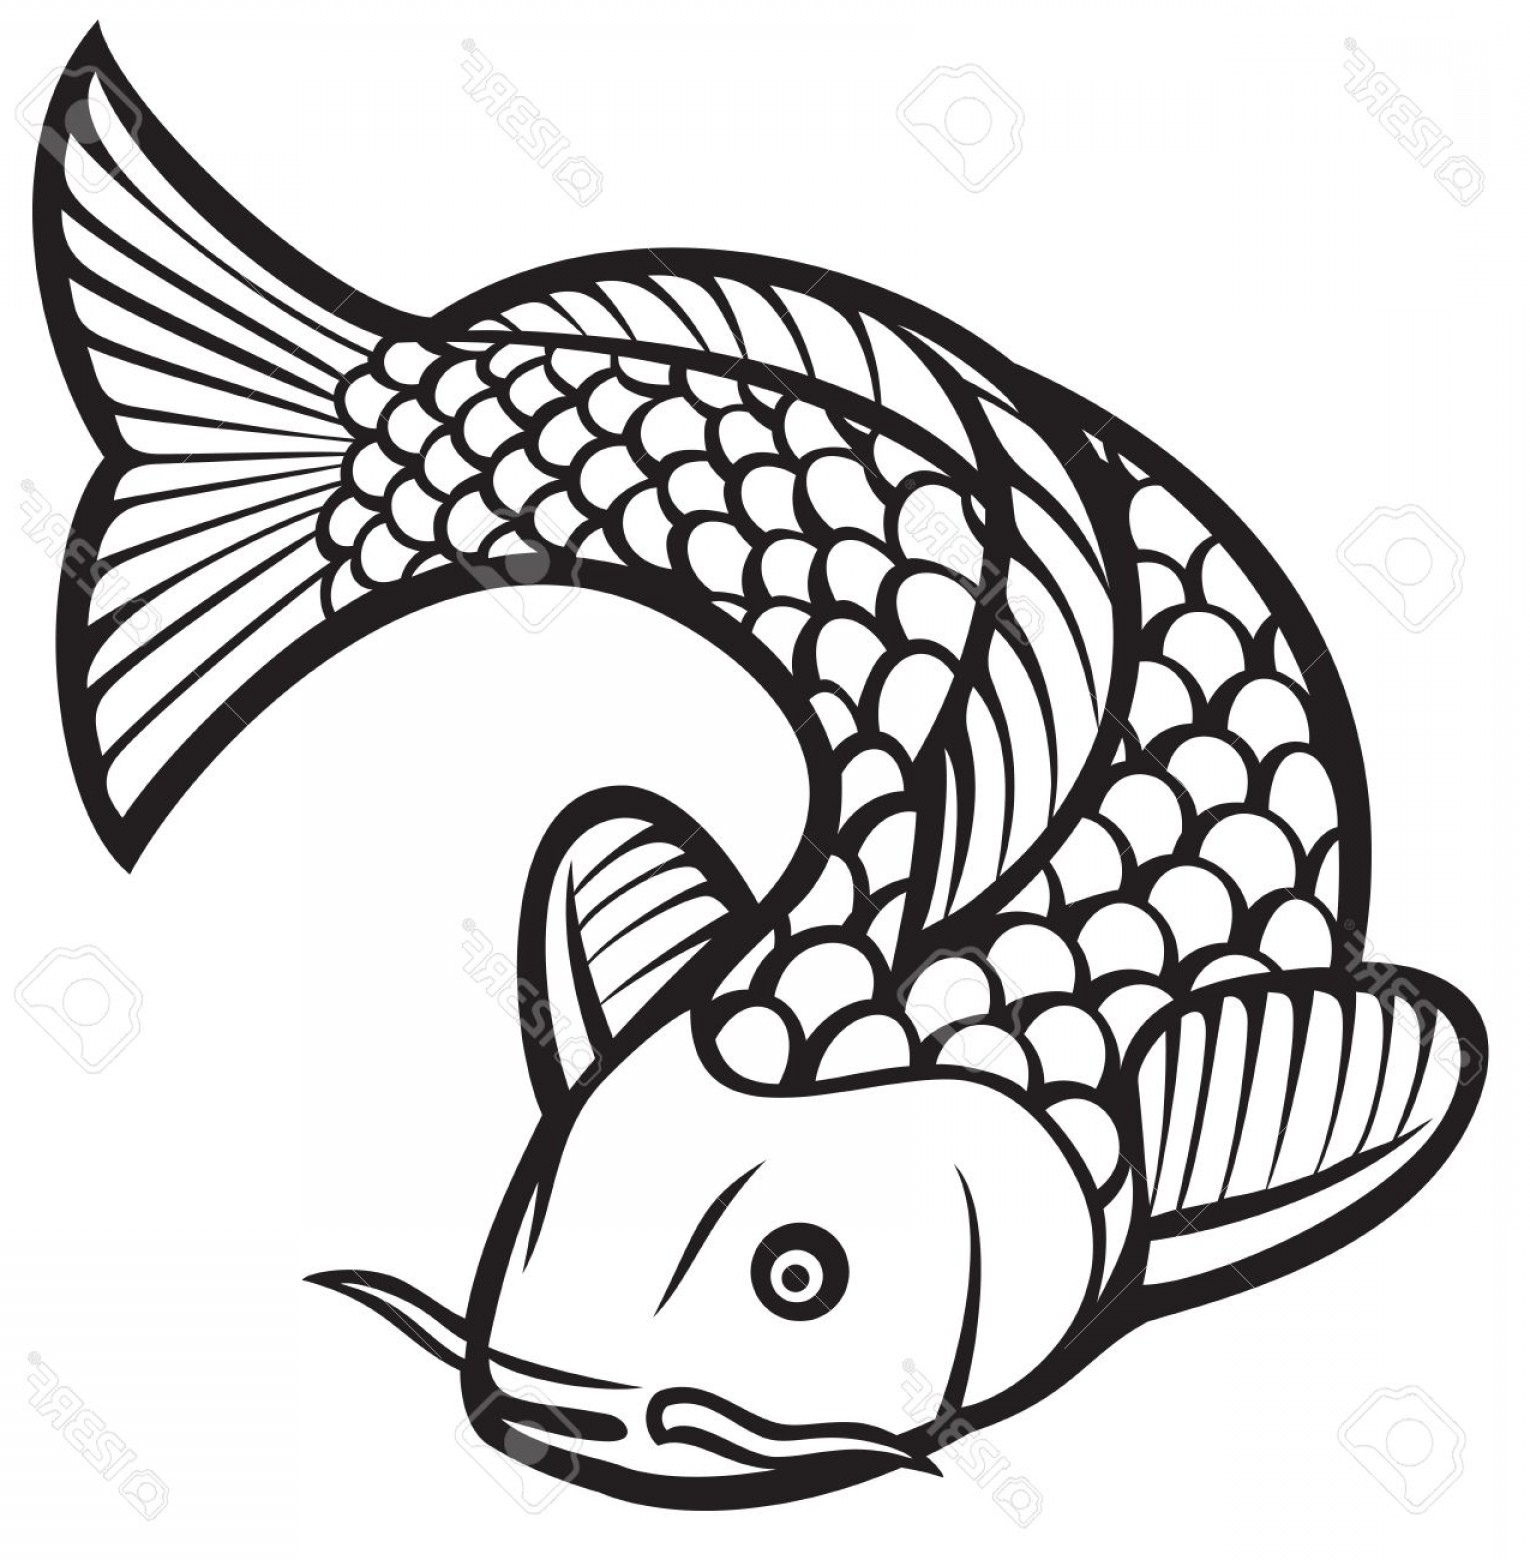 Black And White Koi Vector: Photostock Vector Koi Fish Vector Illustration Of A Japanese Or Chinese Inspired Koi Carp Fish